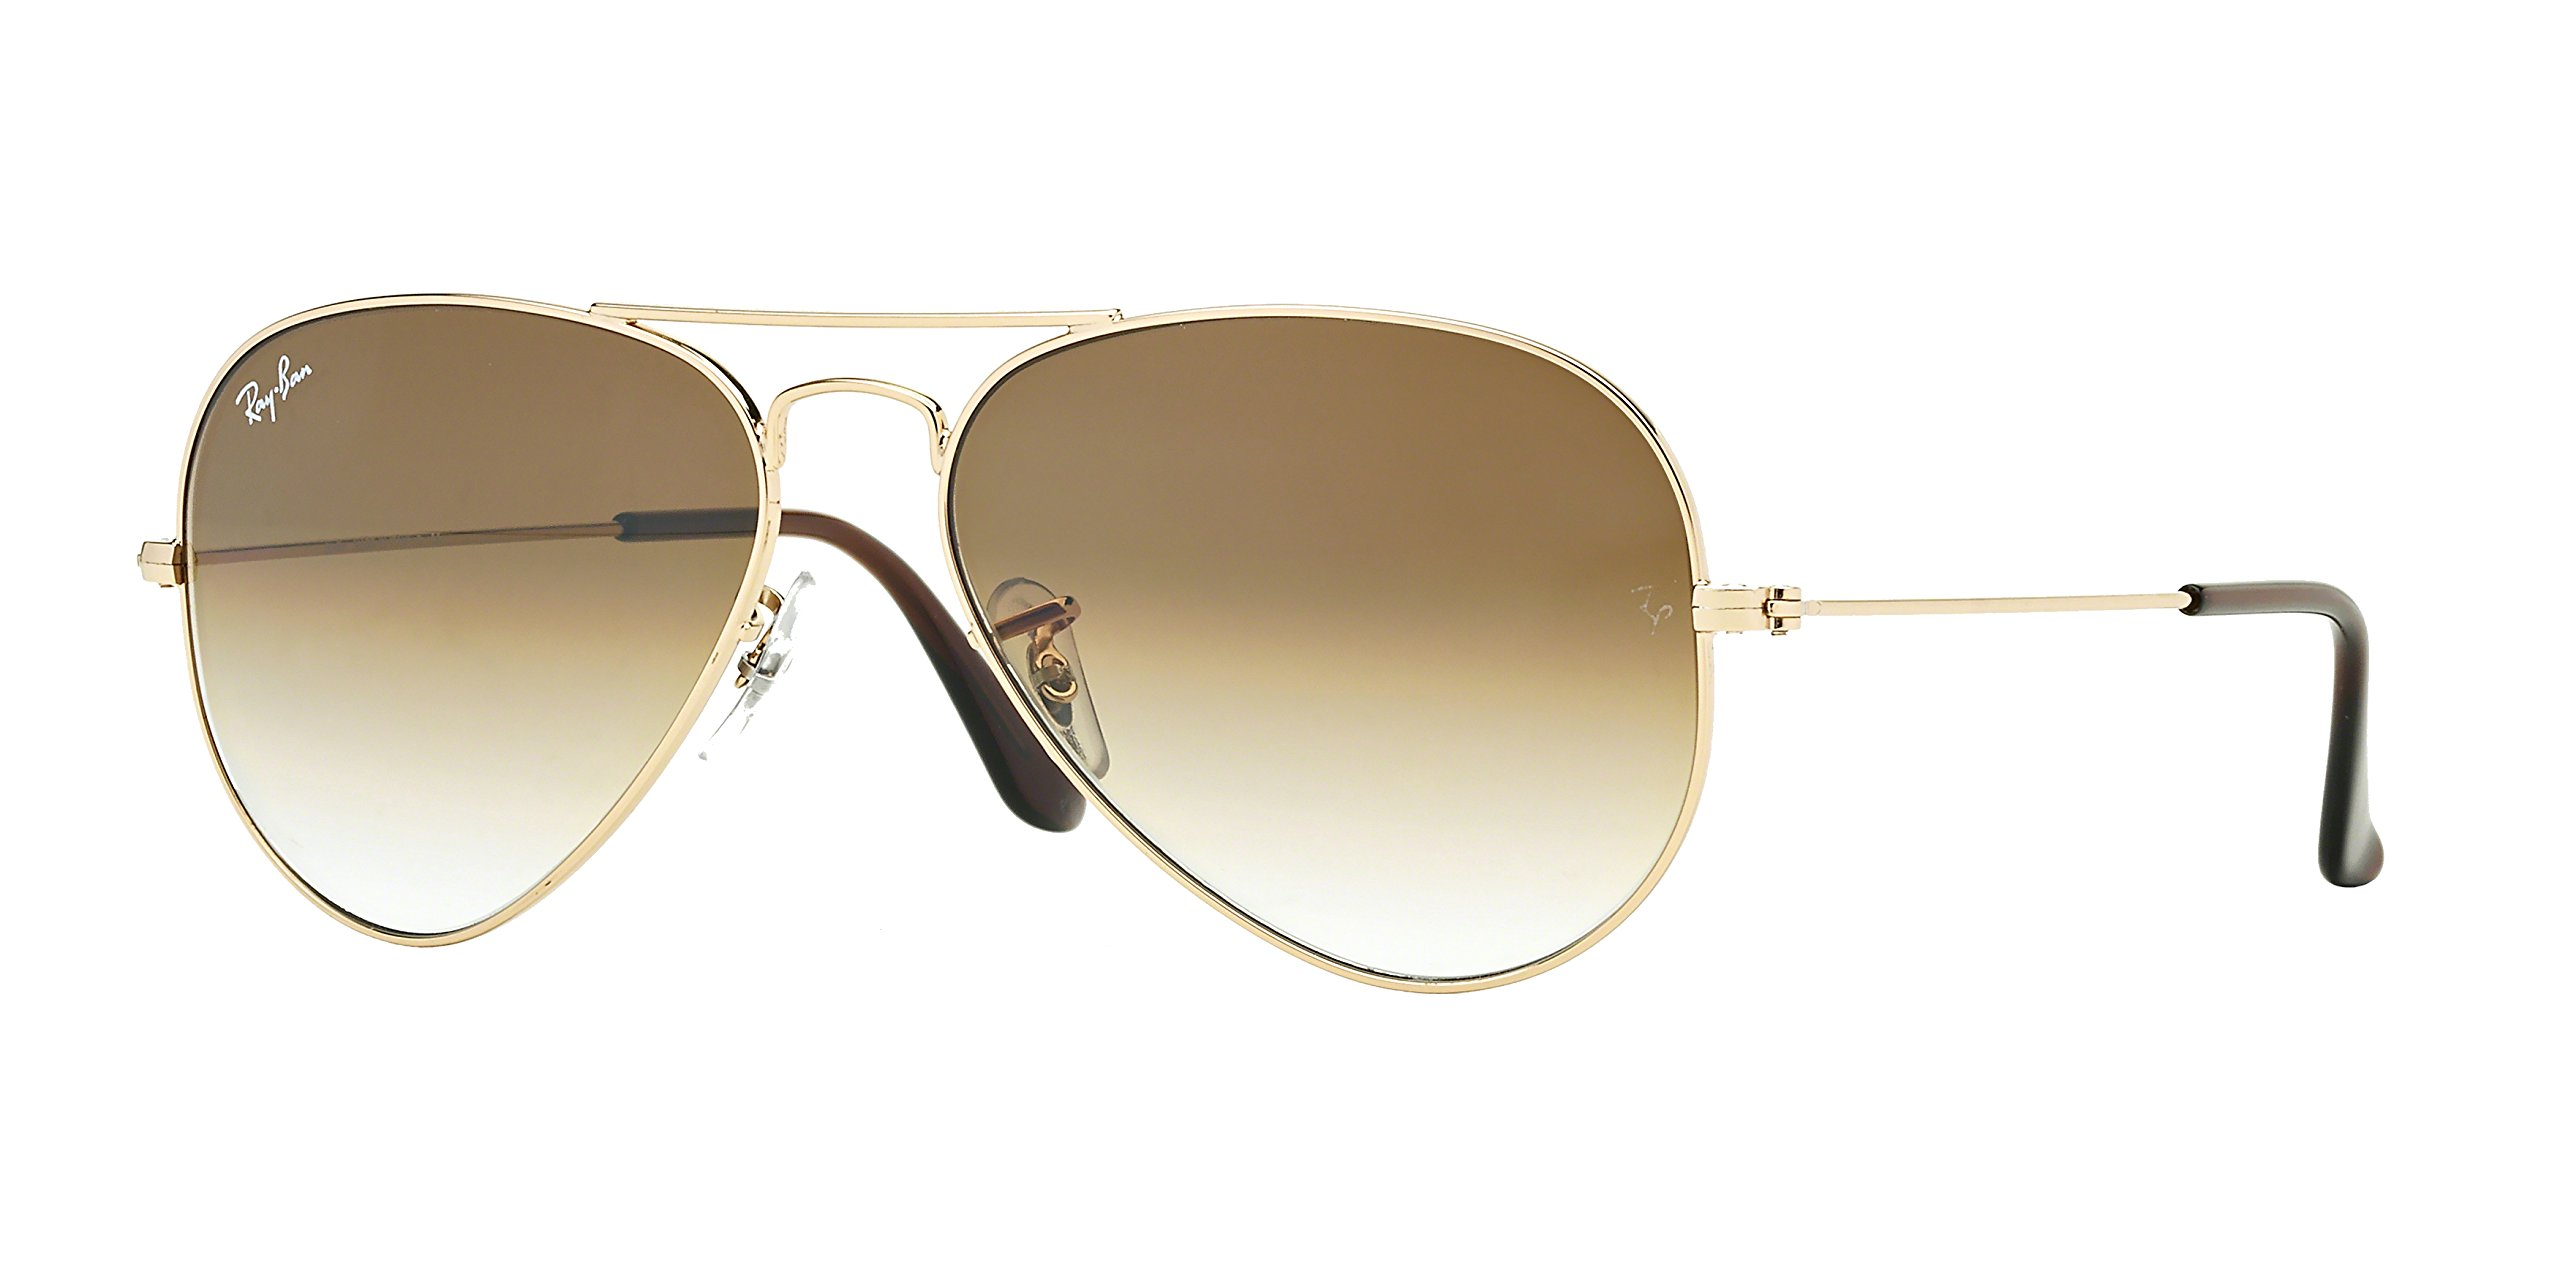 Ray-ban Brown Grad Aviator Sunglasses RB 3025 001/51 55mm +SD Gift+Cleaning Kit